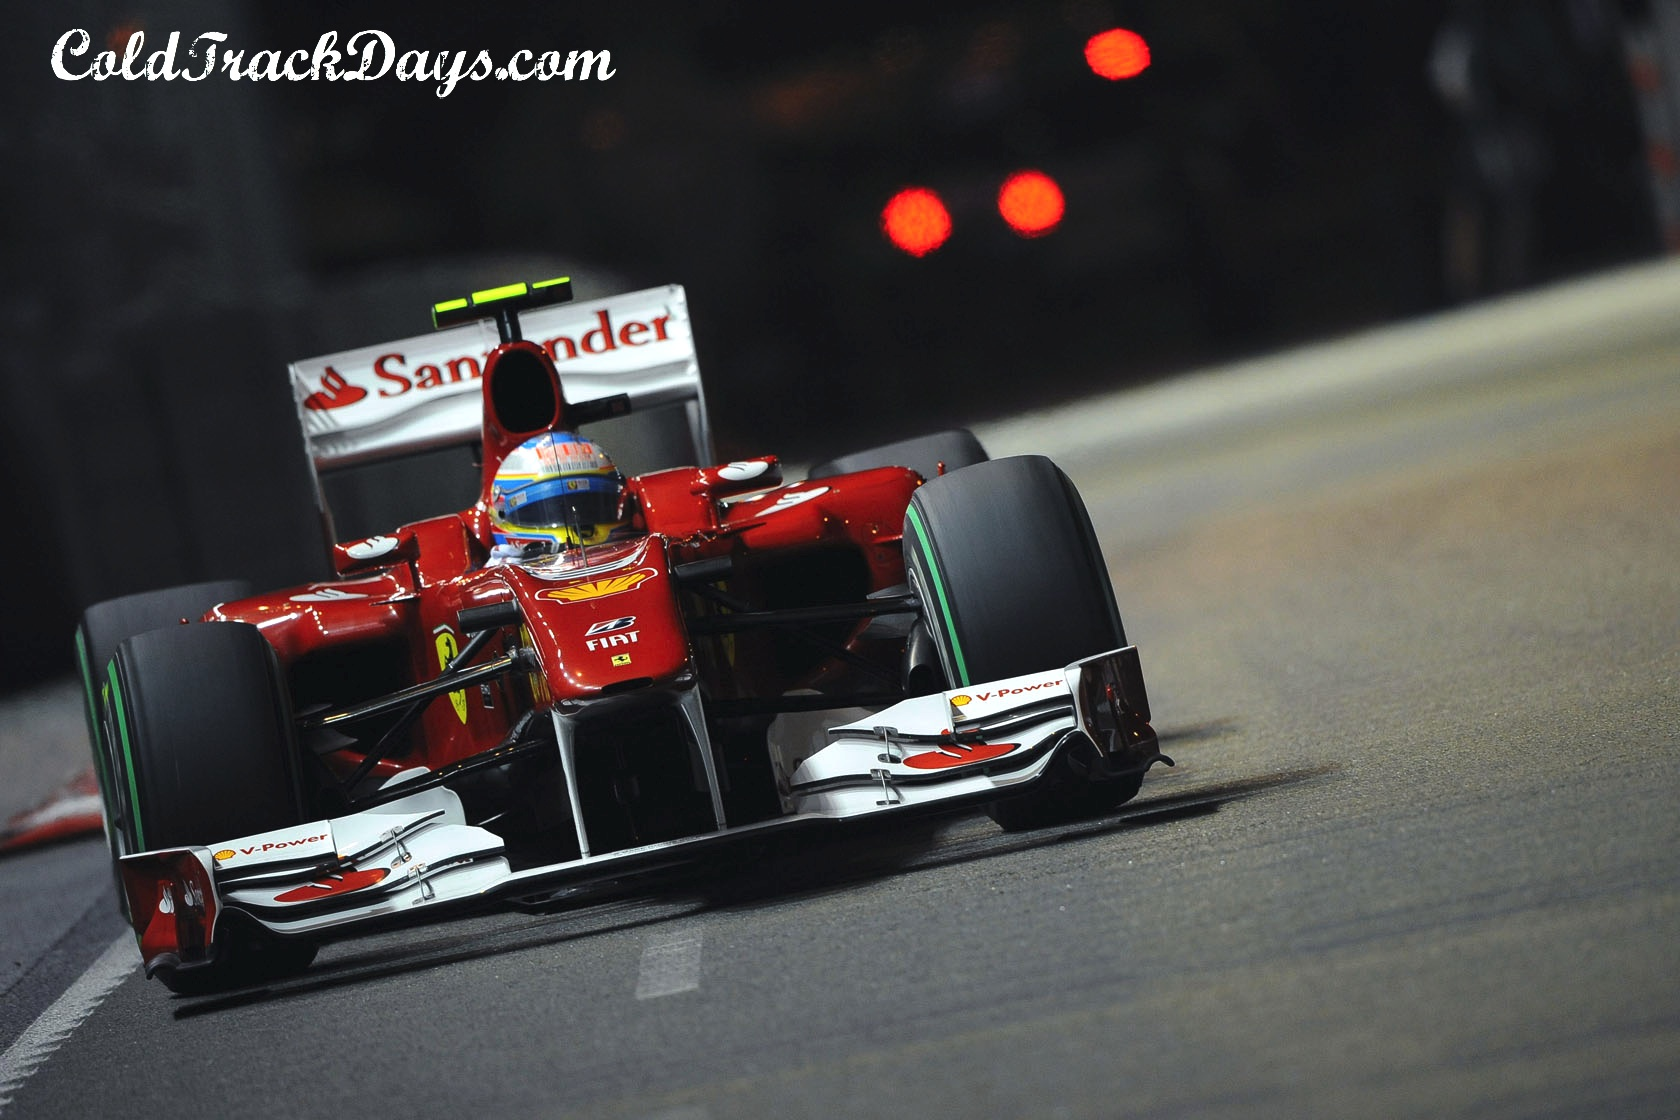 2010 SINGAPORE GRAND PRIX // QUALIFYING RESULTS